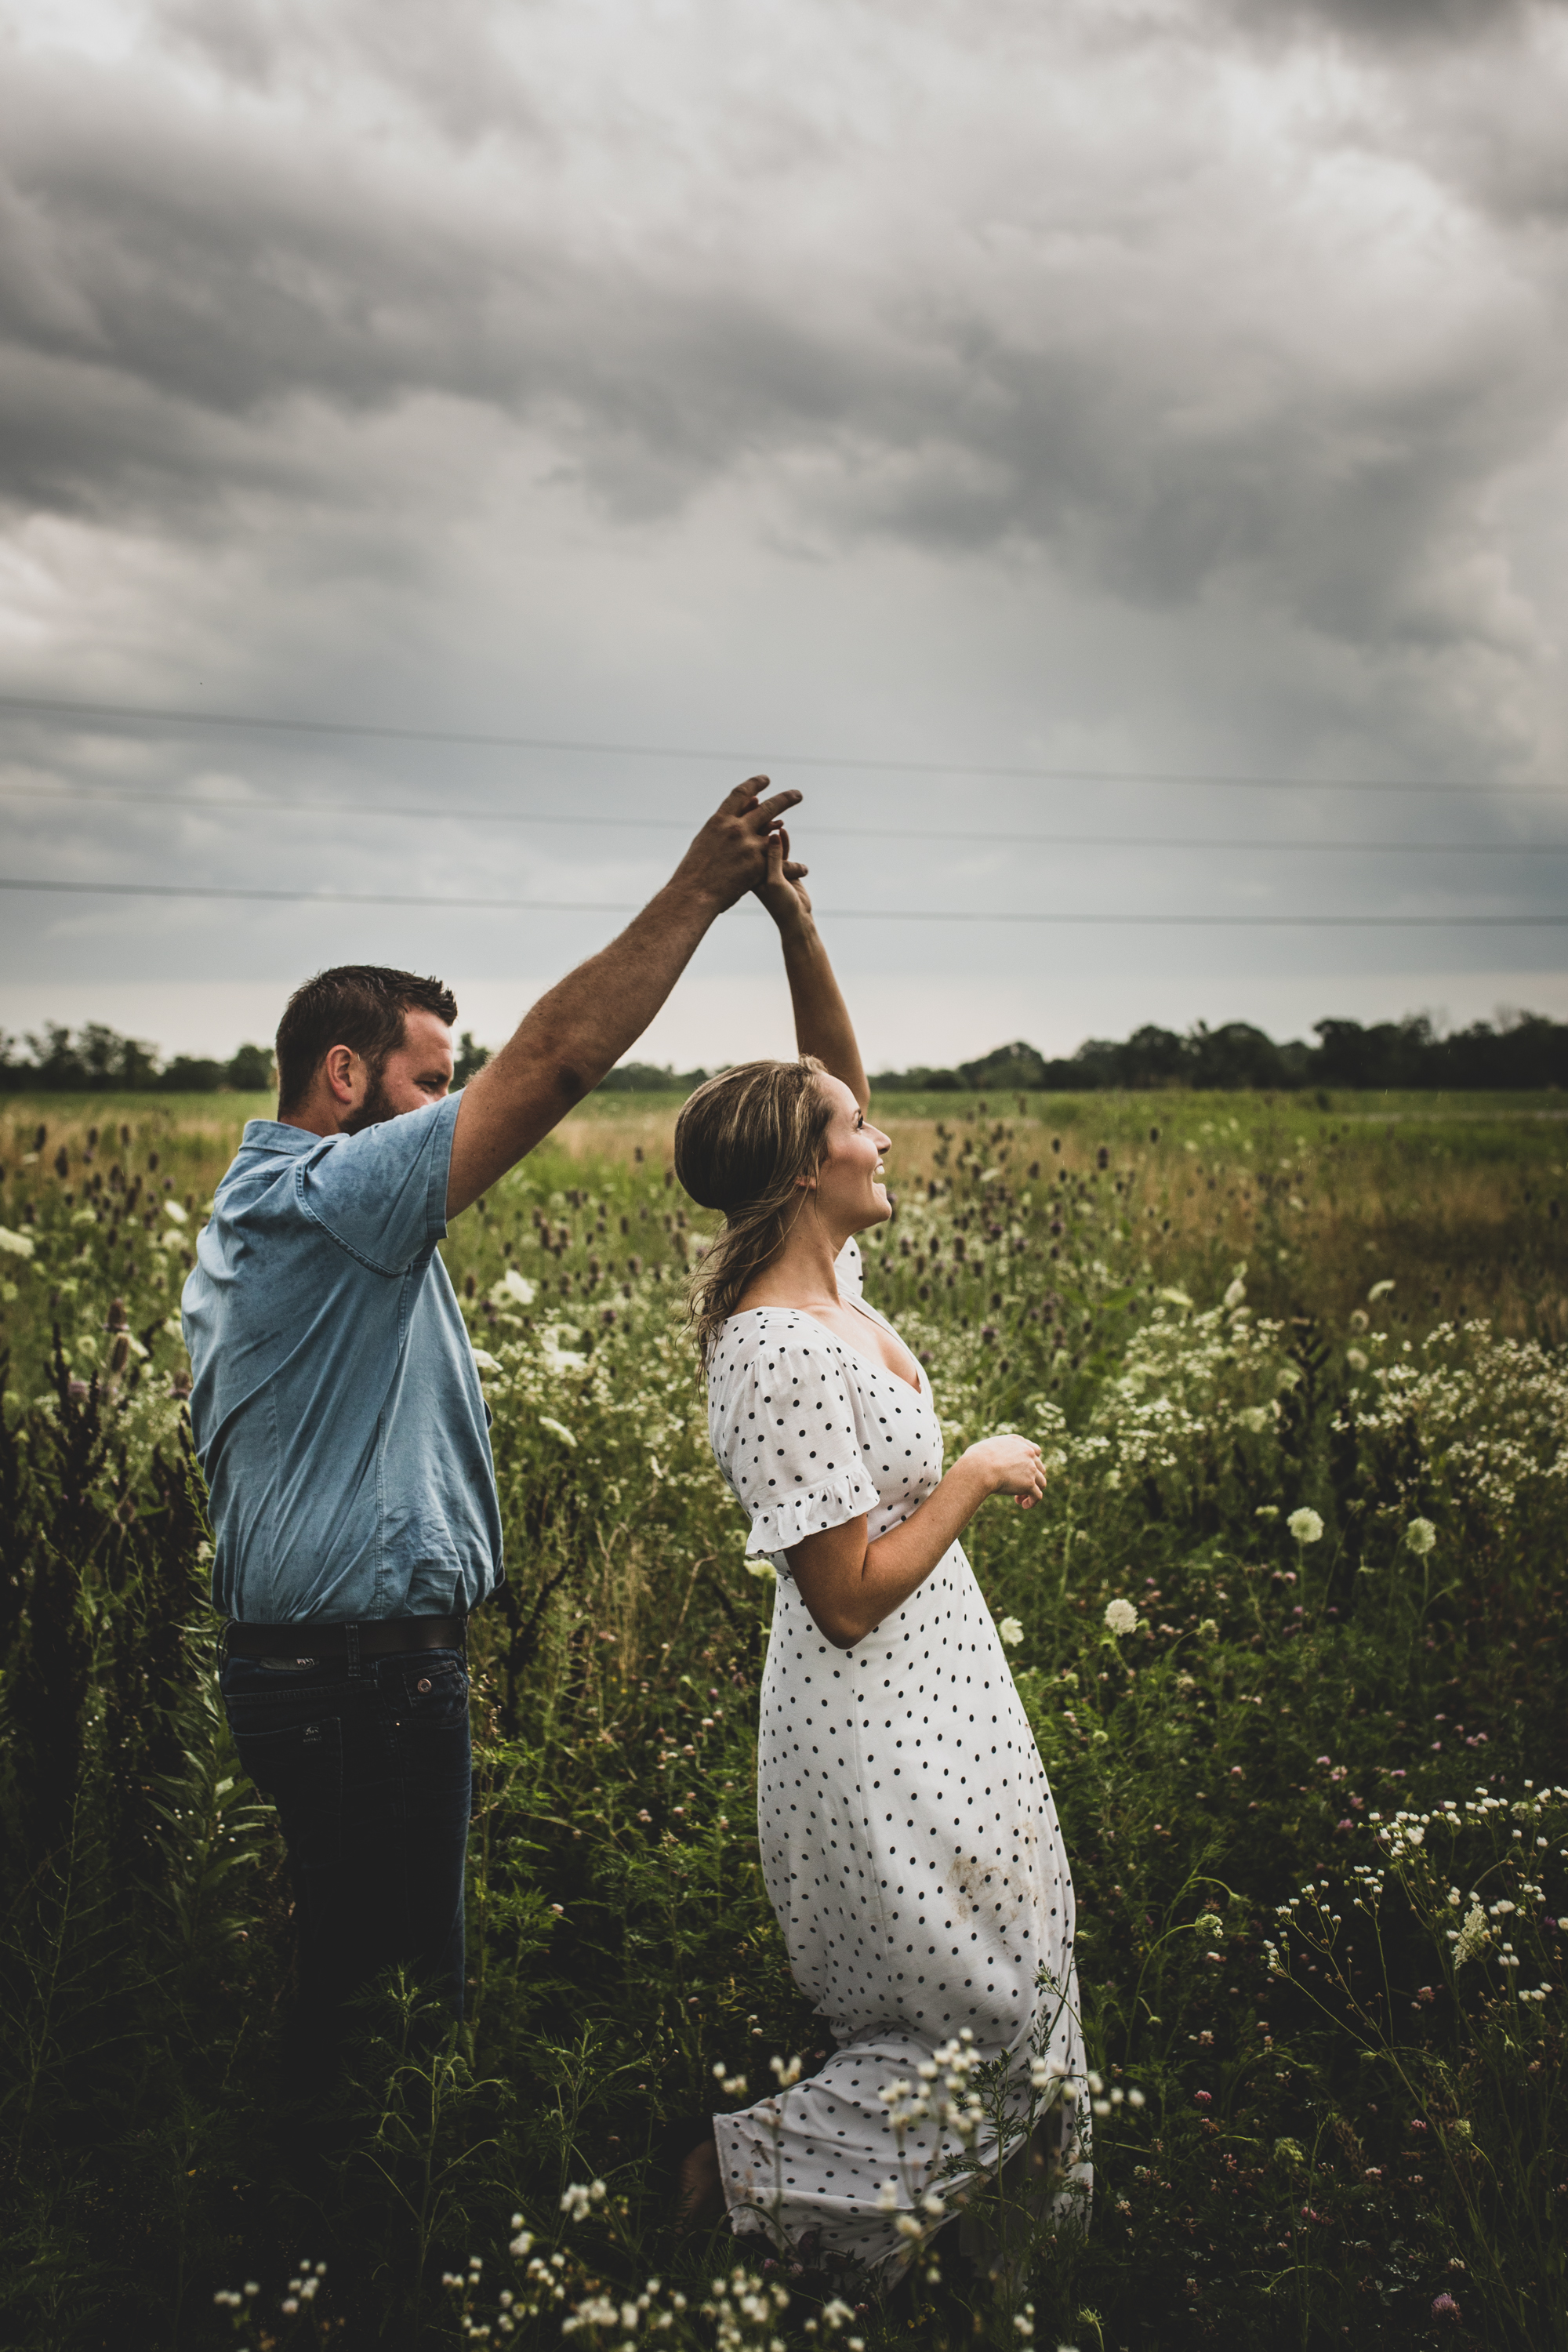 Family-agricultural-photographer-jodie-aldred-photography-rural-country-farm-farmers-ontario-london-huron-middlesex-elgin-chatham-elgin-rural-country-outdoors-wildflowers-couple-storm-summer.jpg